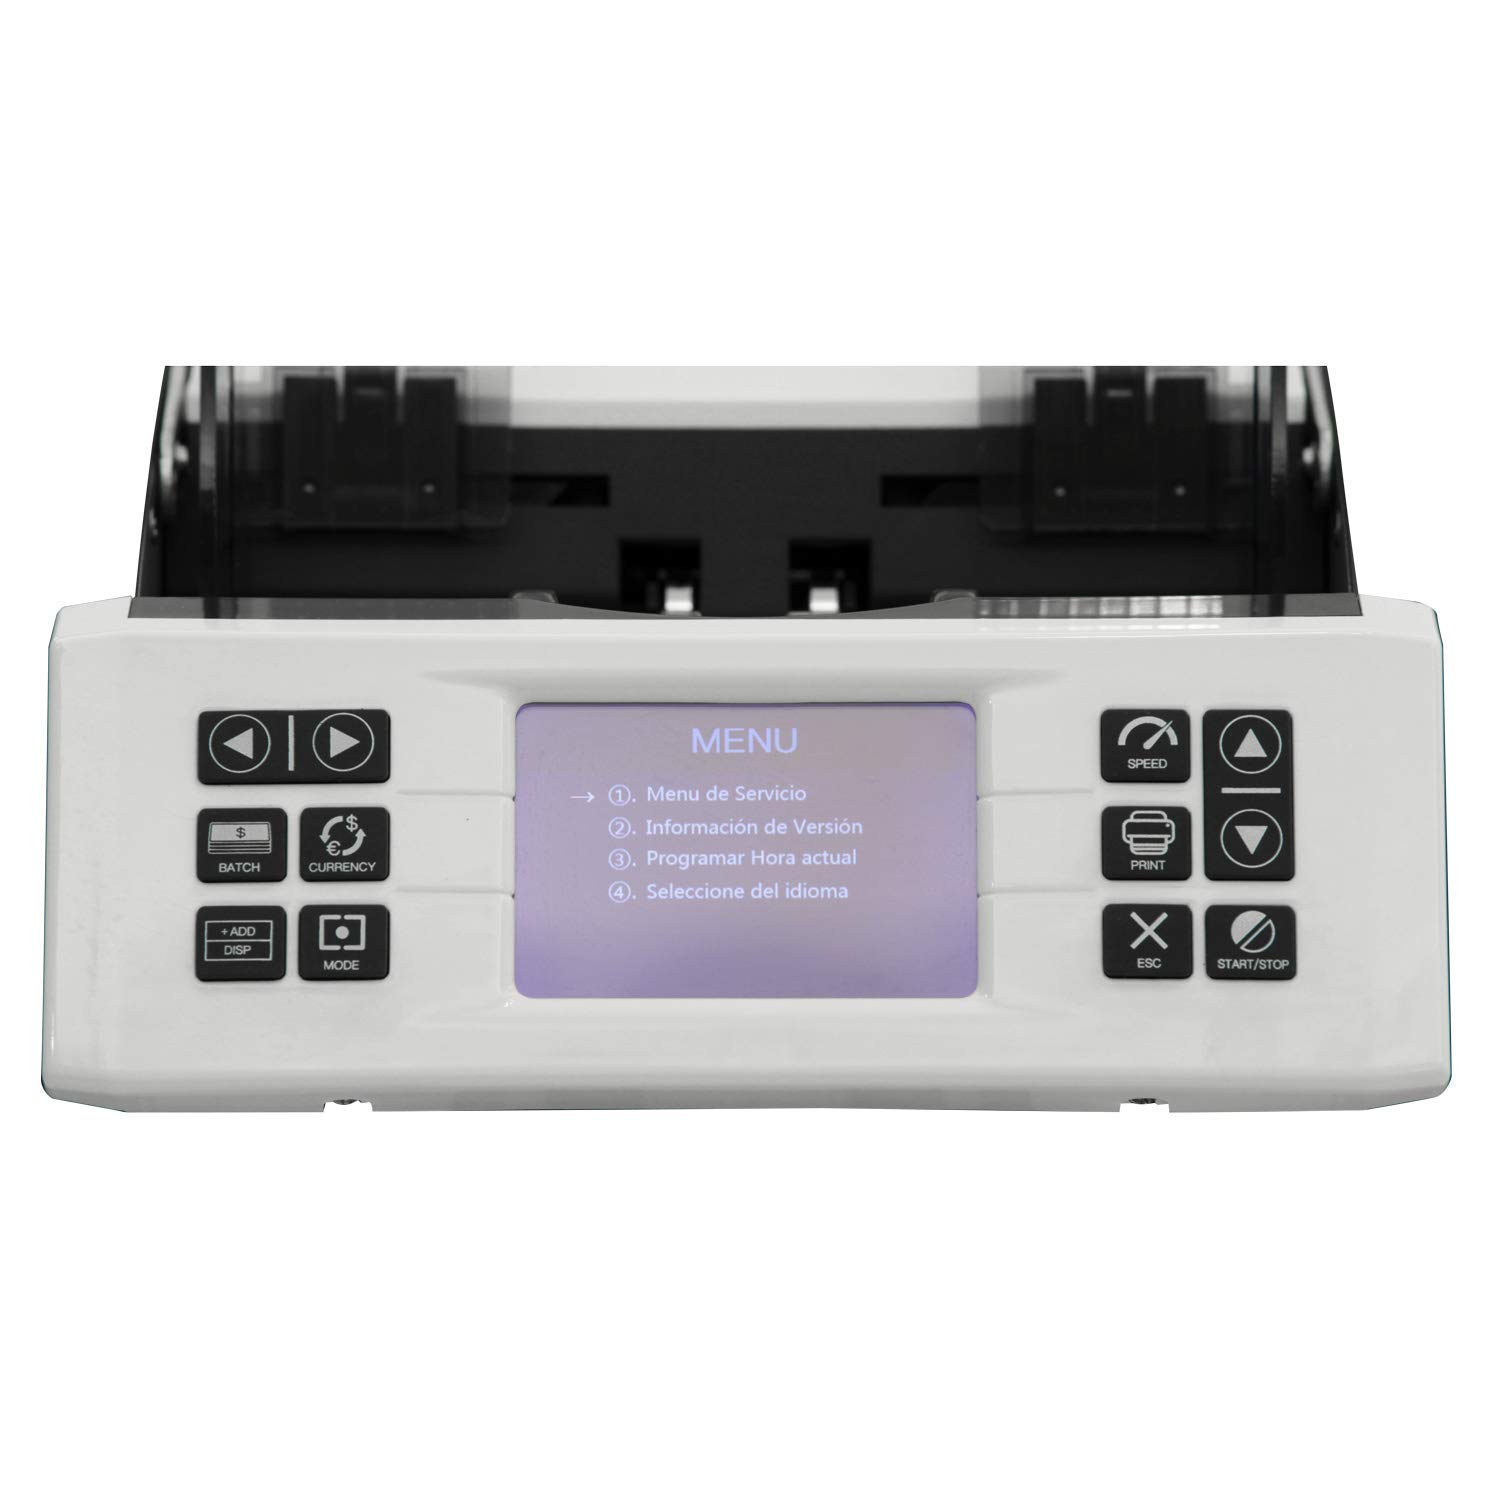 Demotio MA-180S Bank Grade Mixed Denomination and Multi-Currency (USD, EUR, CNY and GBP) Bill Counter with Full Detection and Receipt Printing Function (with Optional Printer) by Demotio